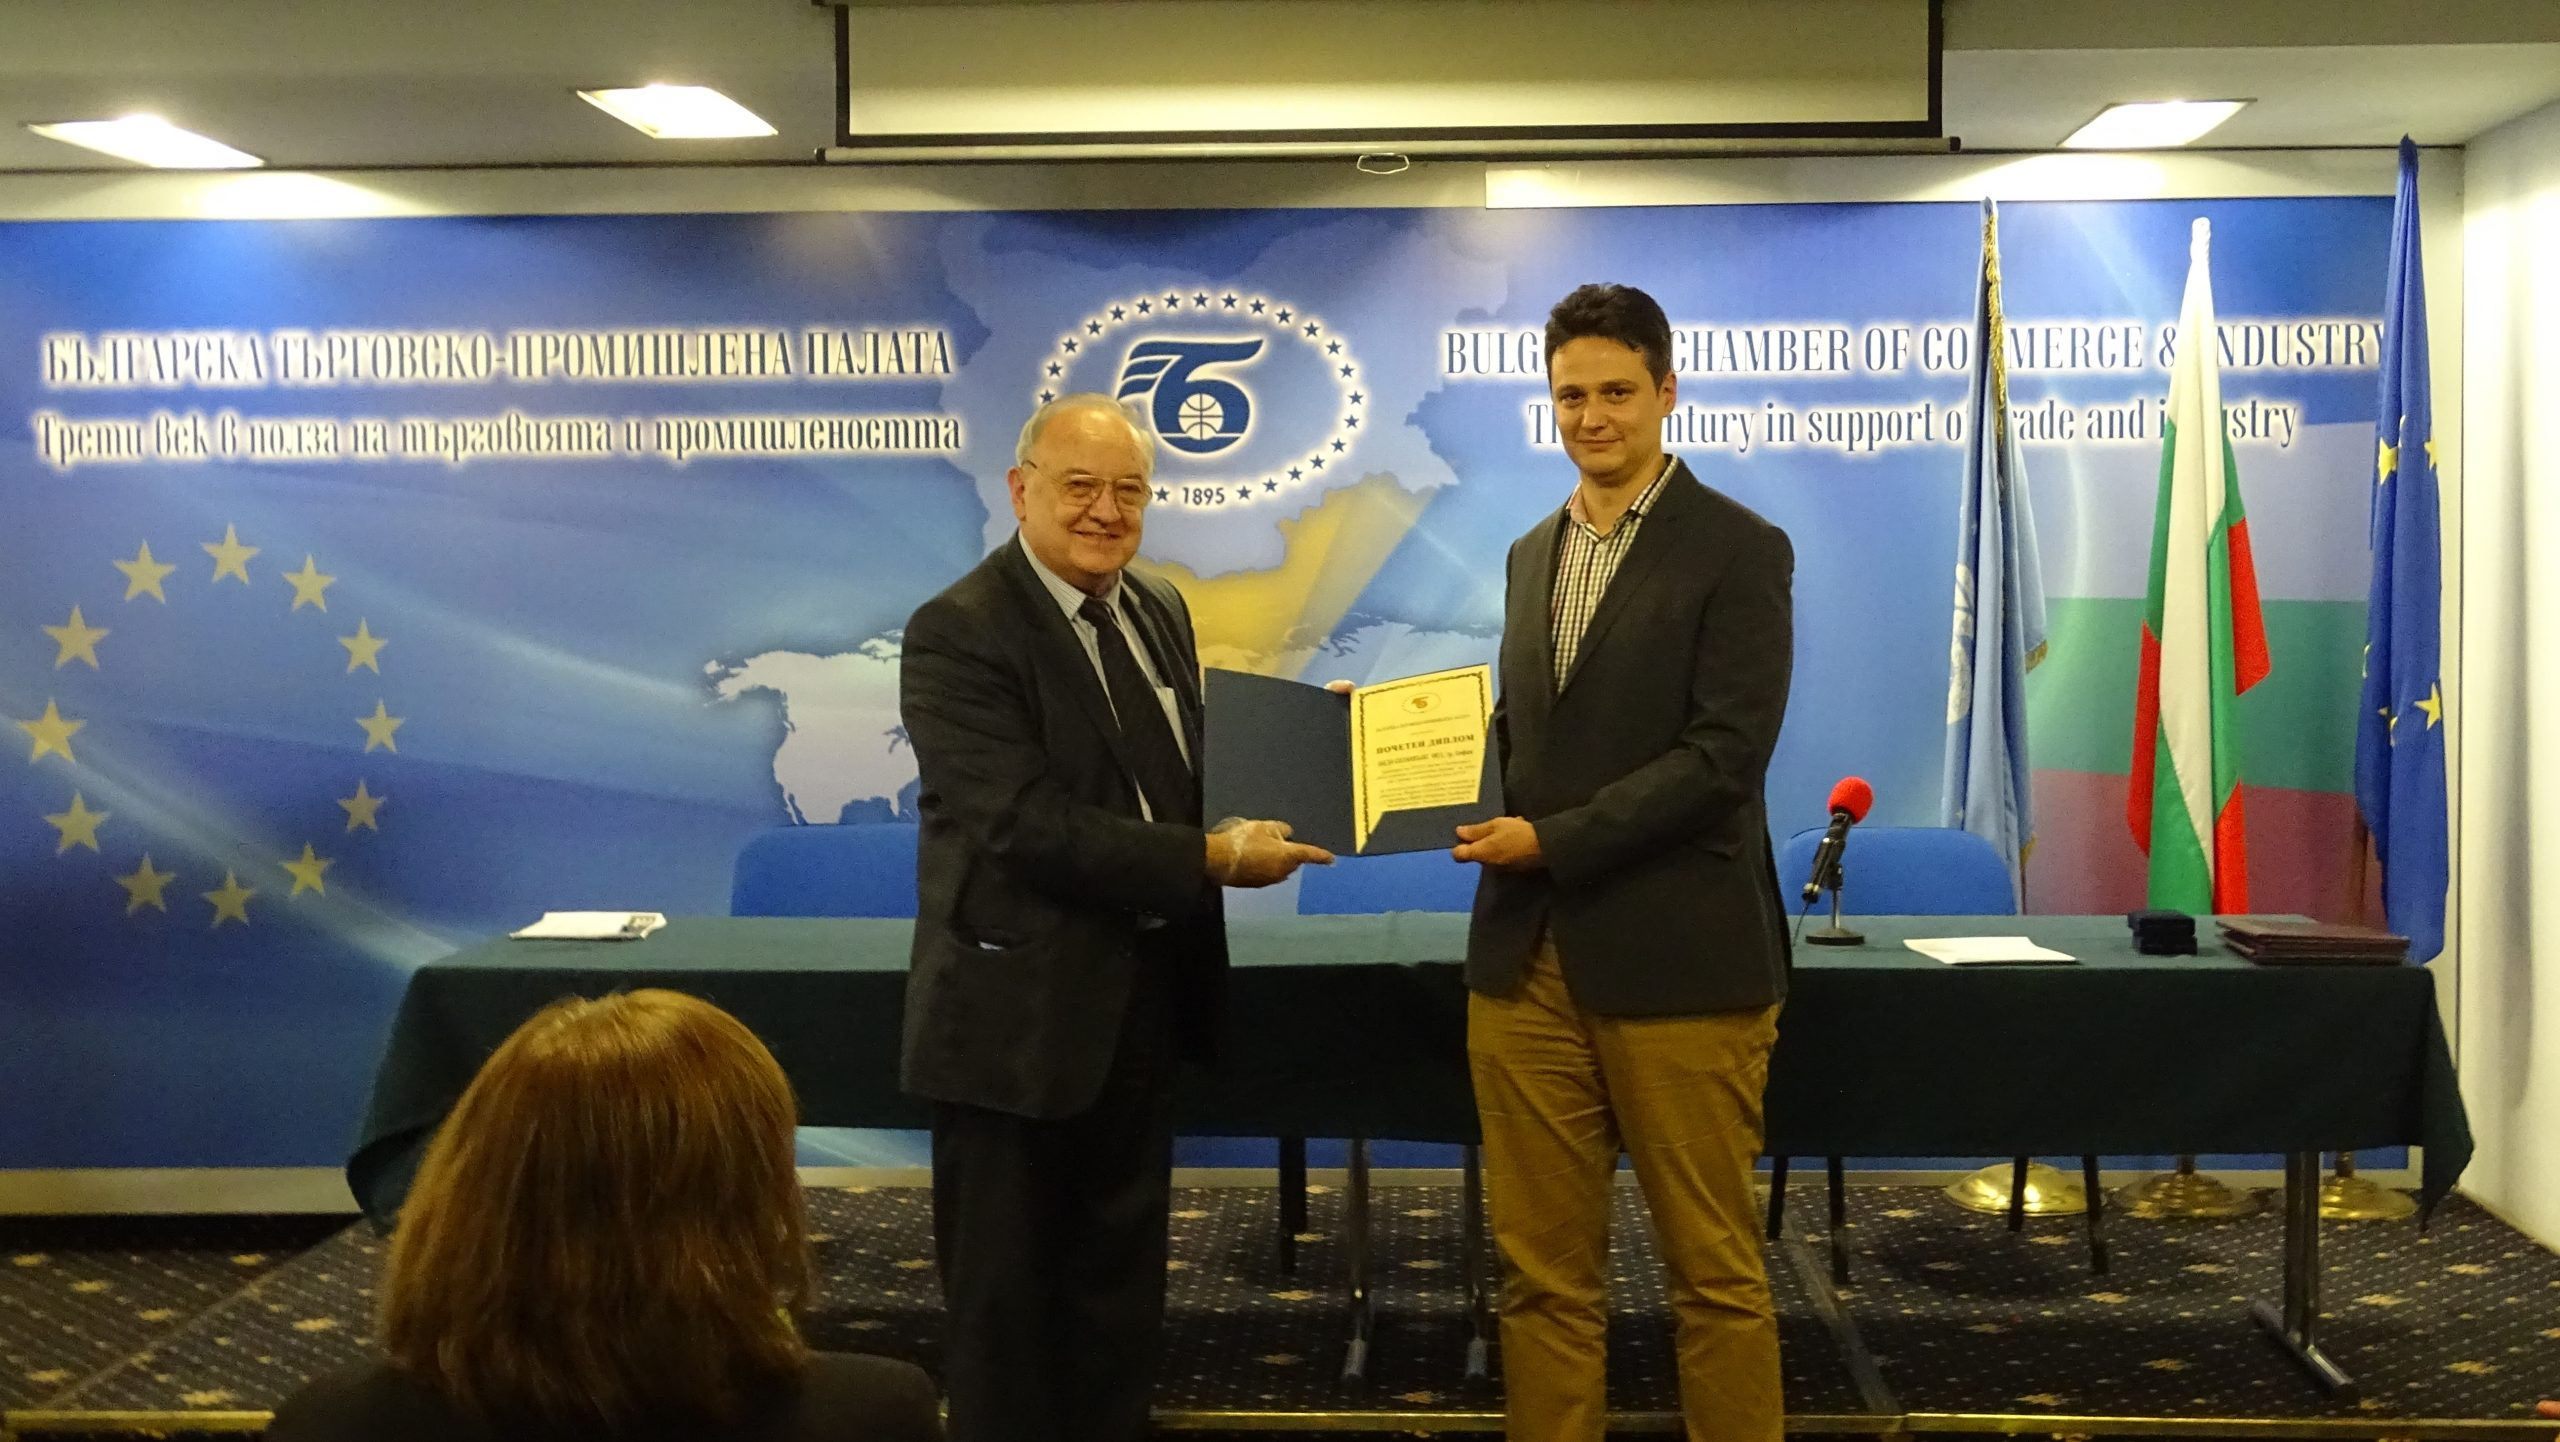 ONDO awarded by the Innovation council at the Bulgarian chamber of commerce and industry